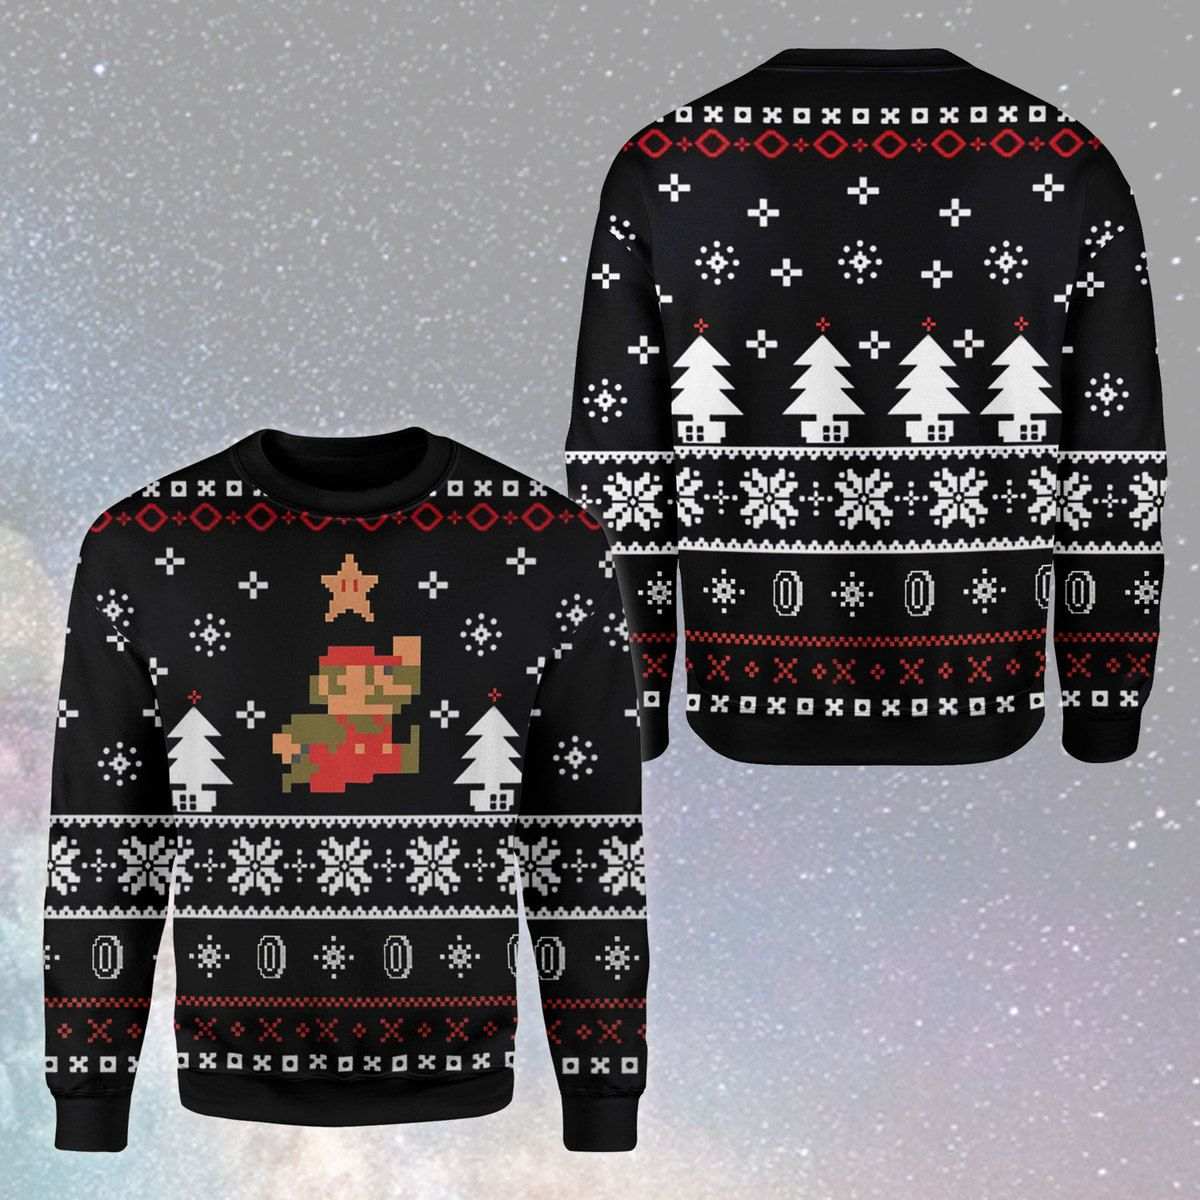 TOP UGLY CHRISTMAS SWEATER SO HOT FOR XMAS HOLLIDAY